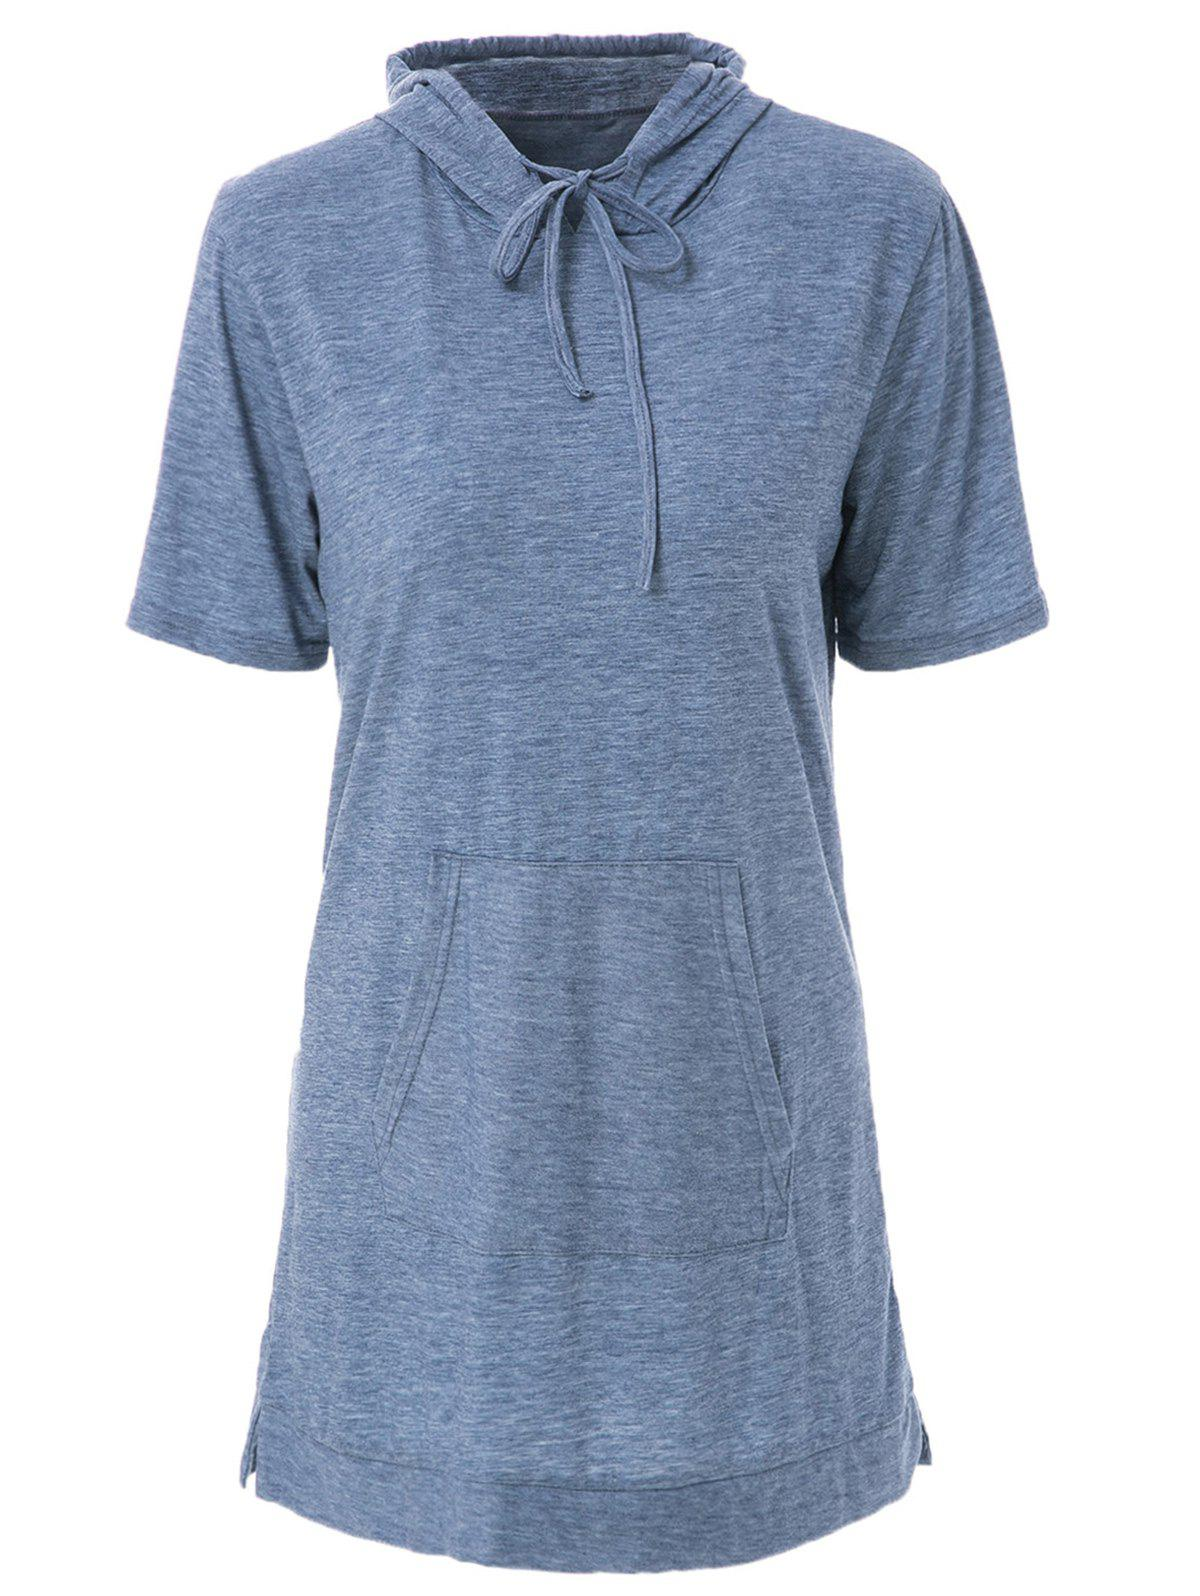 Casual Hooded Short Sleeve Pocket Design Women's Dress